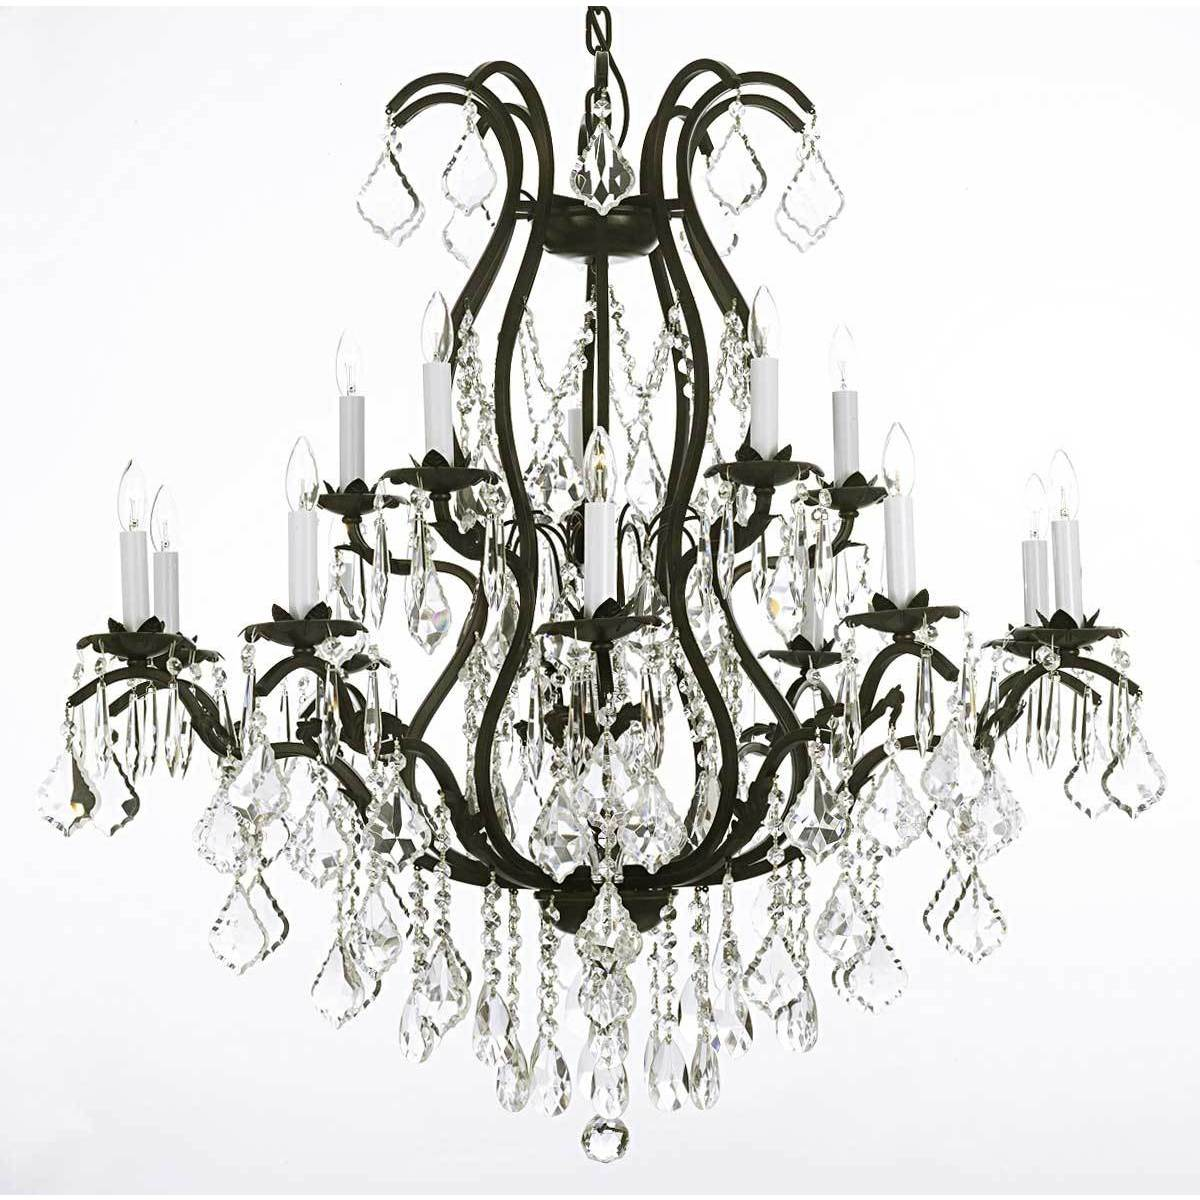 foucault crystal dark orb and ceiling chandelier bronze s all lights light chandeliers iron